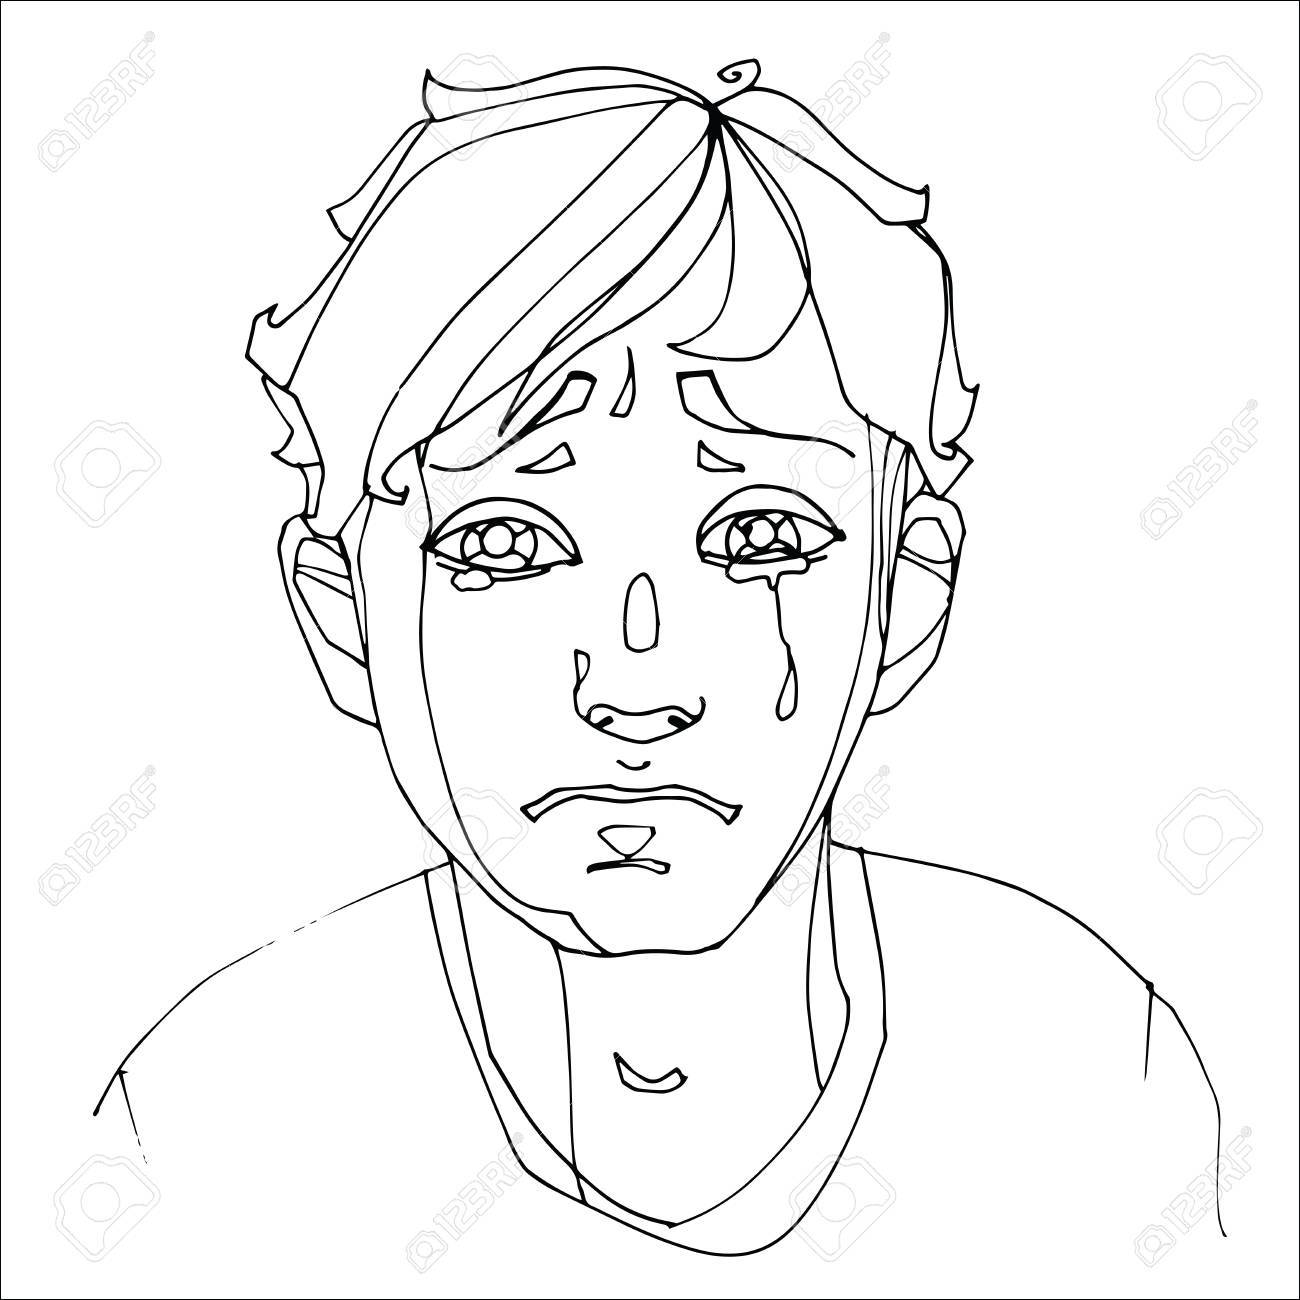 The boy crying heavily human emotions sketch hand drawing contour vector graphics